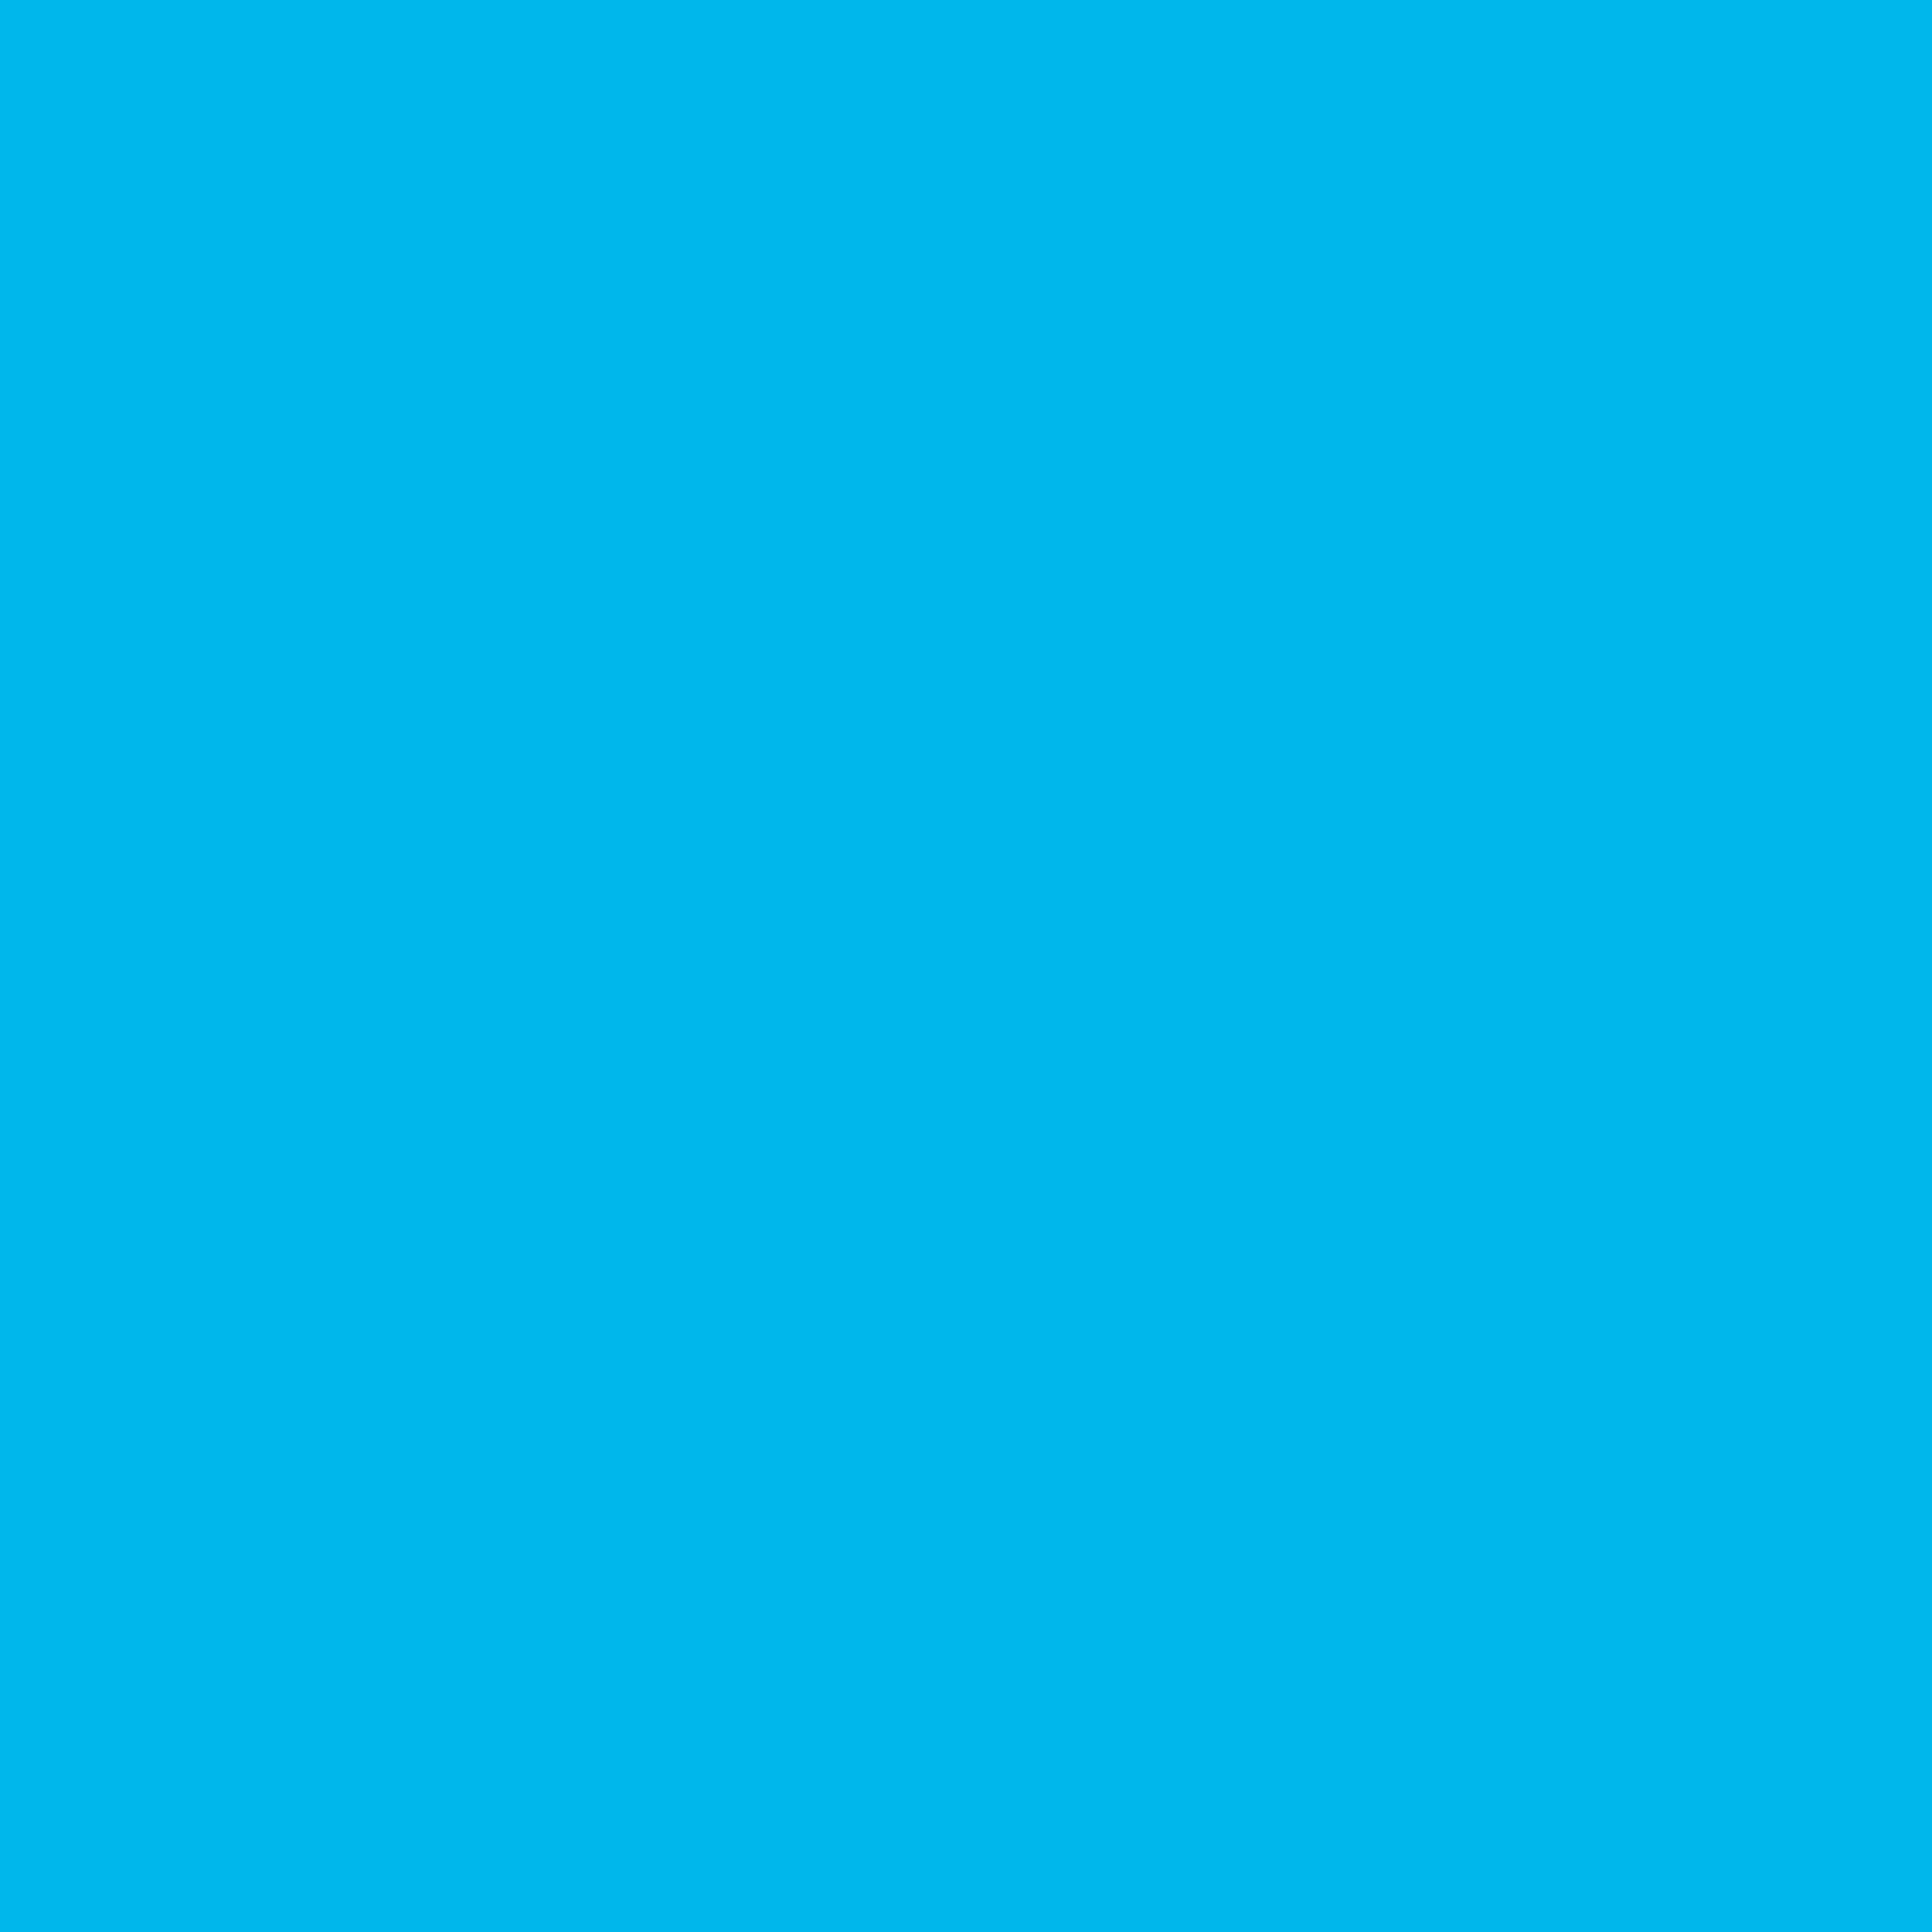 2732x2732 Cyan Process Solid Color Background